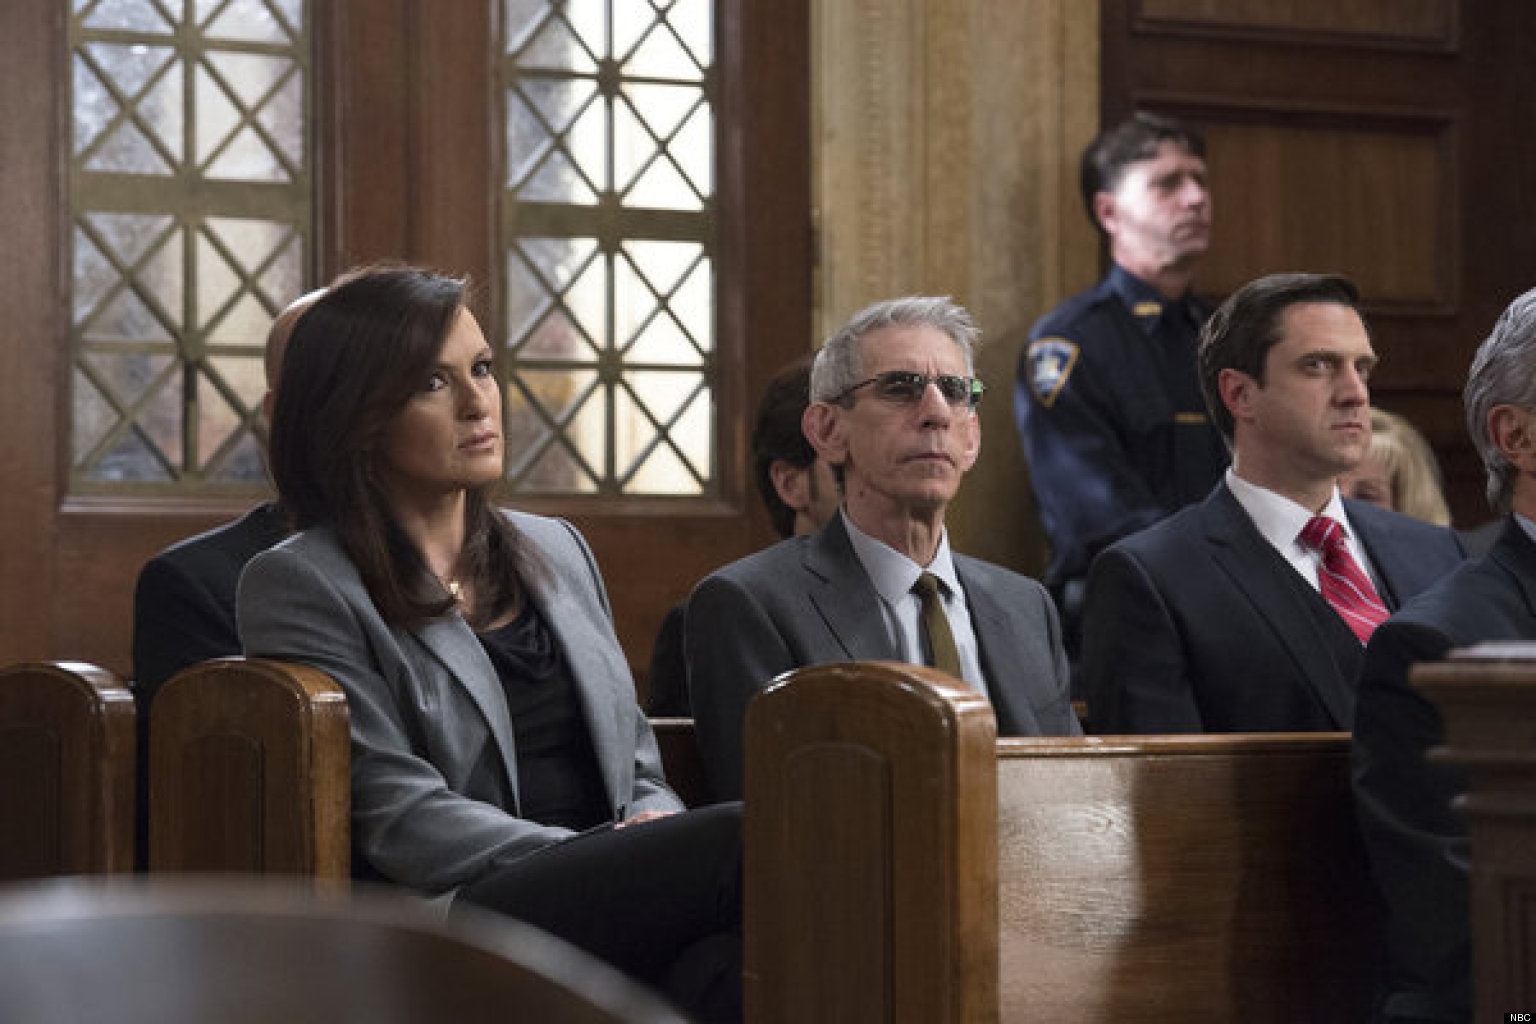 Why Law And Order Svu Is Still Around 15 Years Later